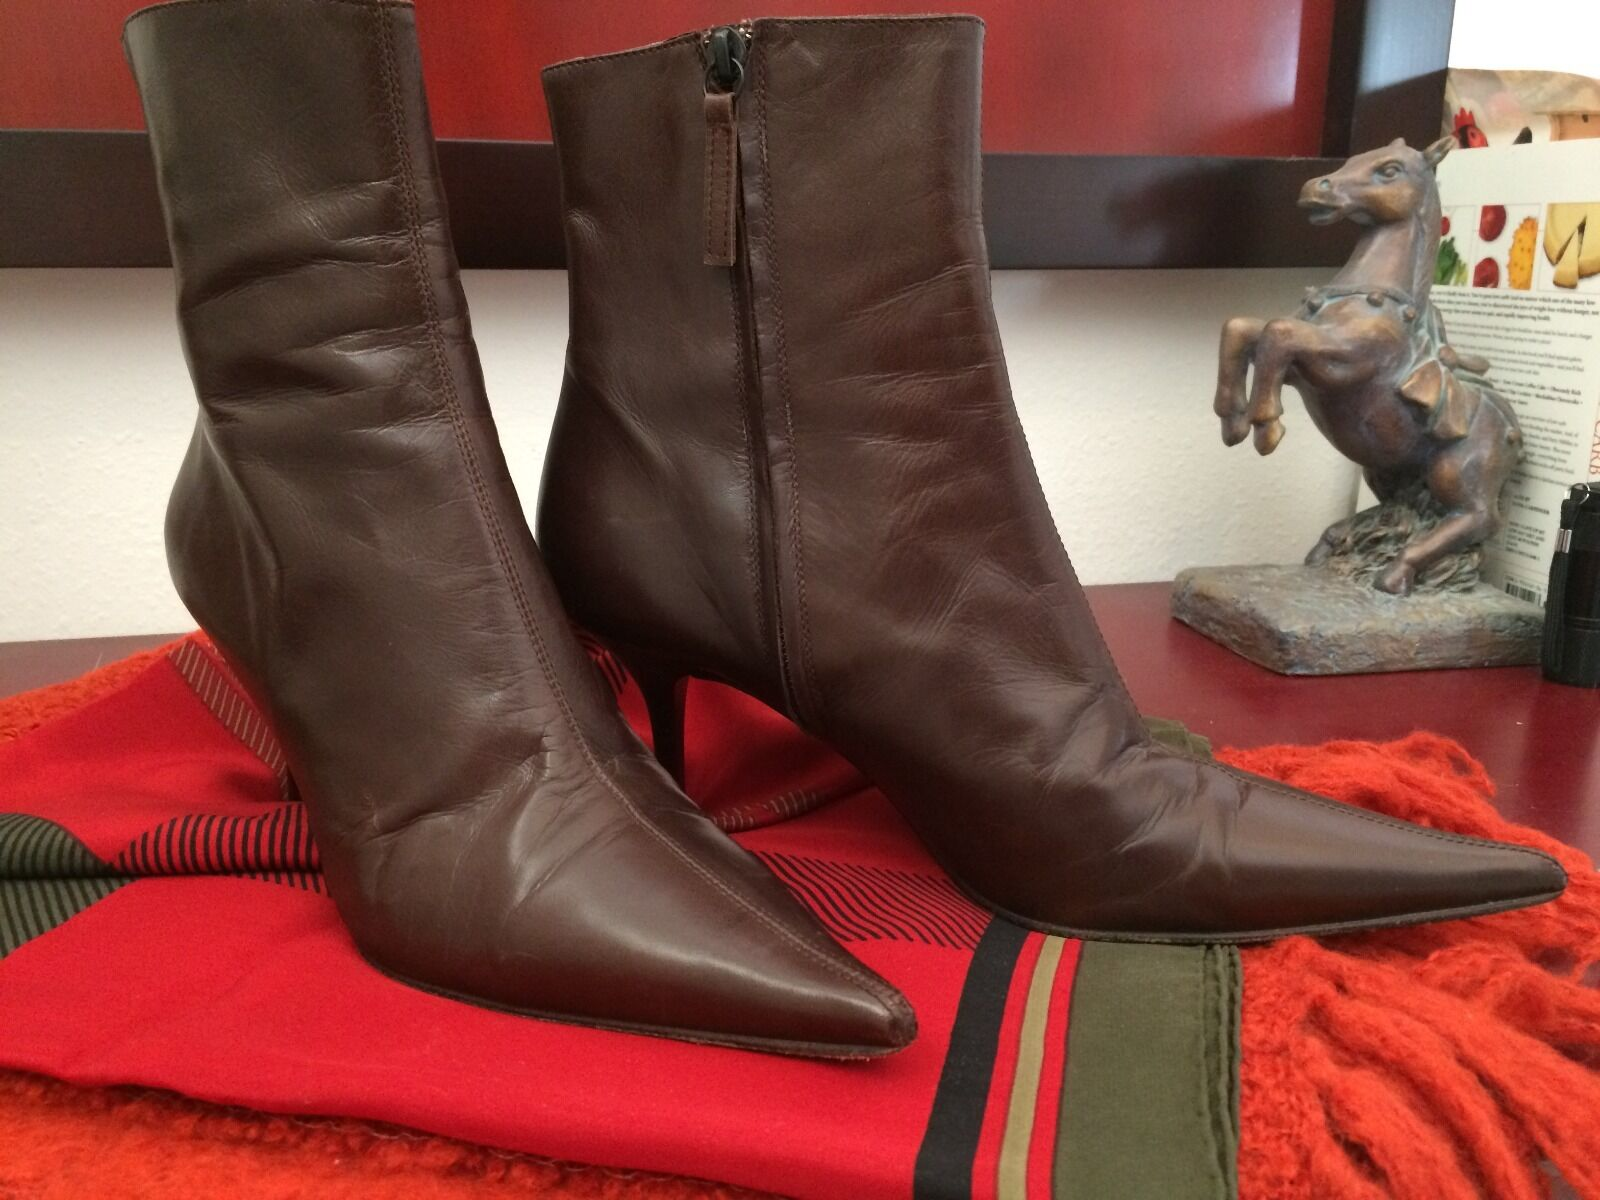 GIANFRANCO FERRE BOOTIES,MADE IN ITALY,SZ BROWN 39.5/9,POINTY,LEATHER BROWN ITALY,SZ 6f9b4d